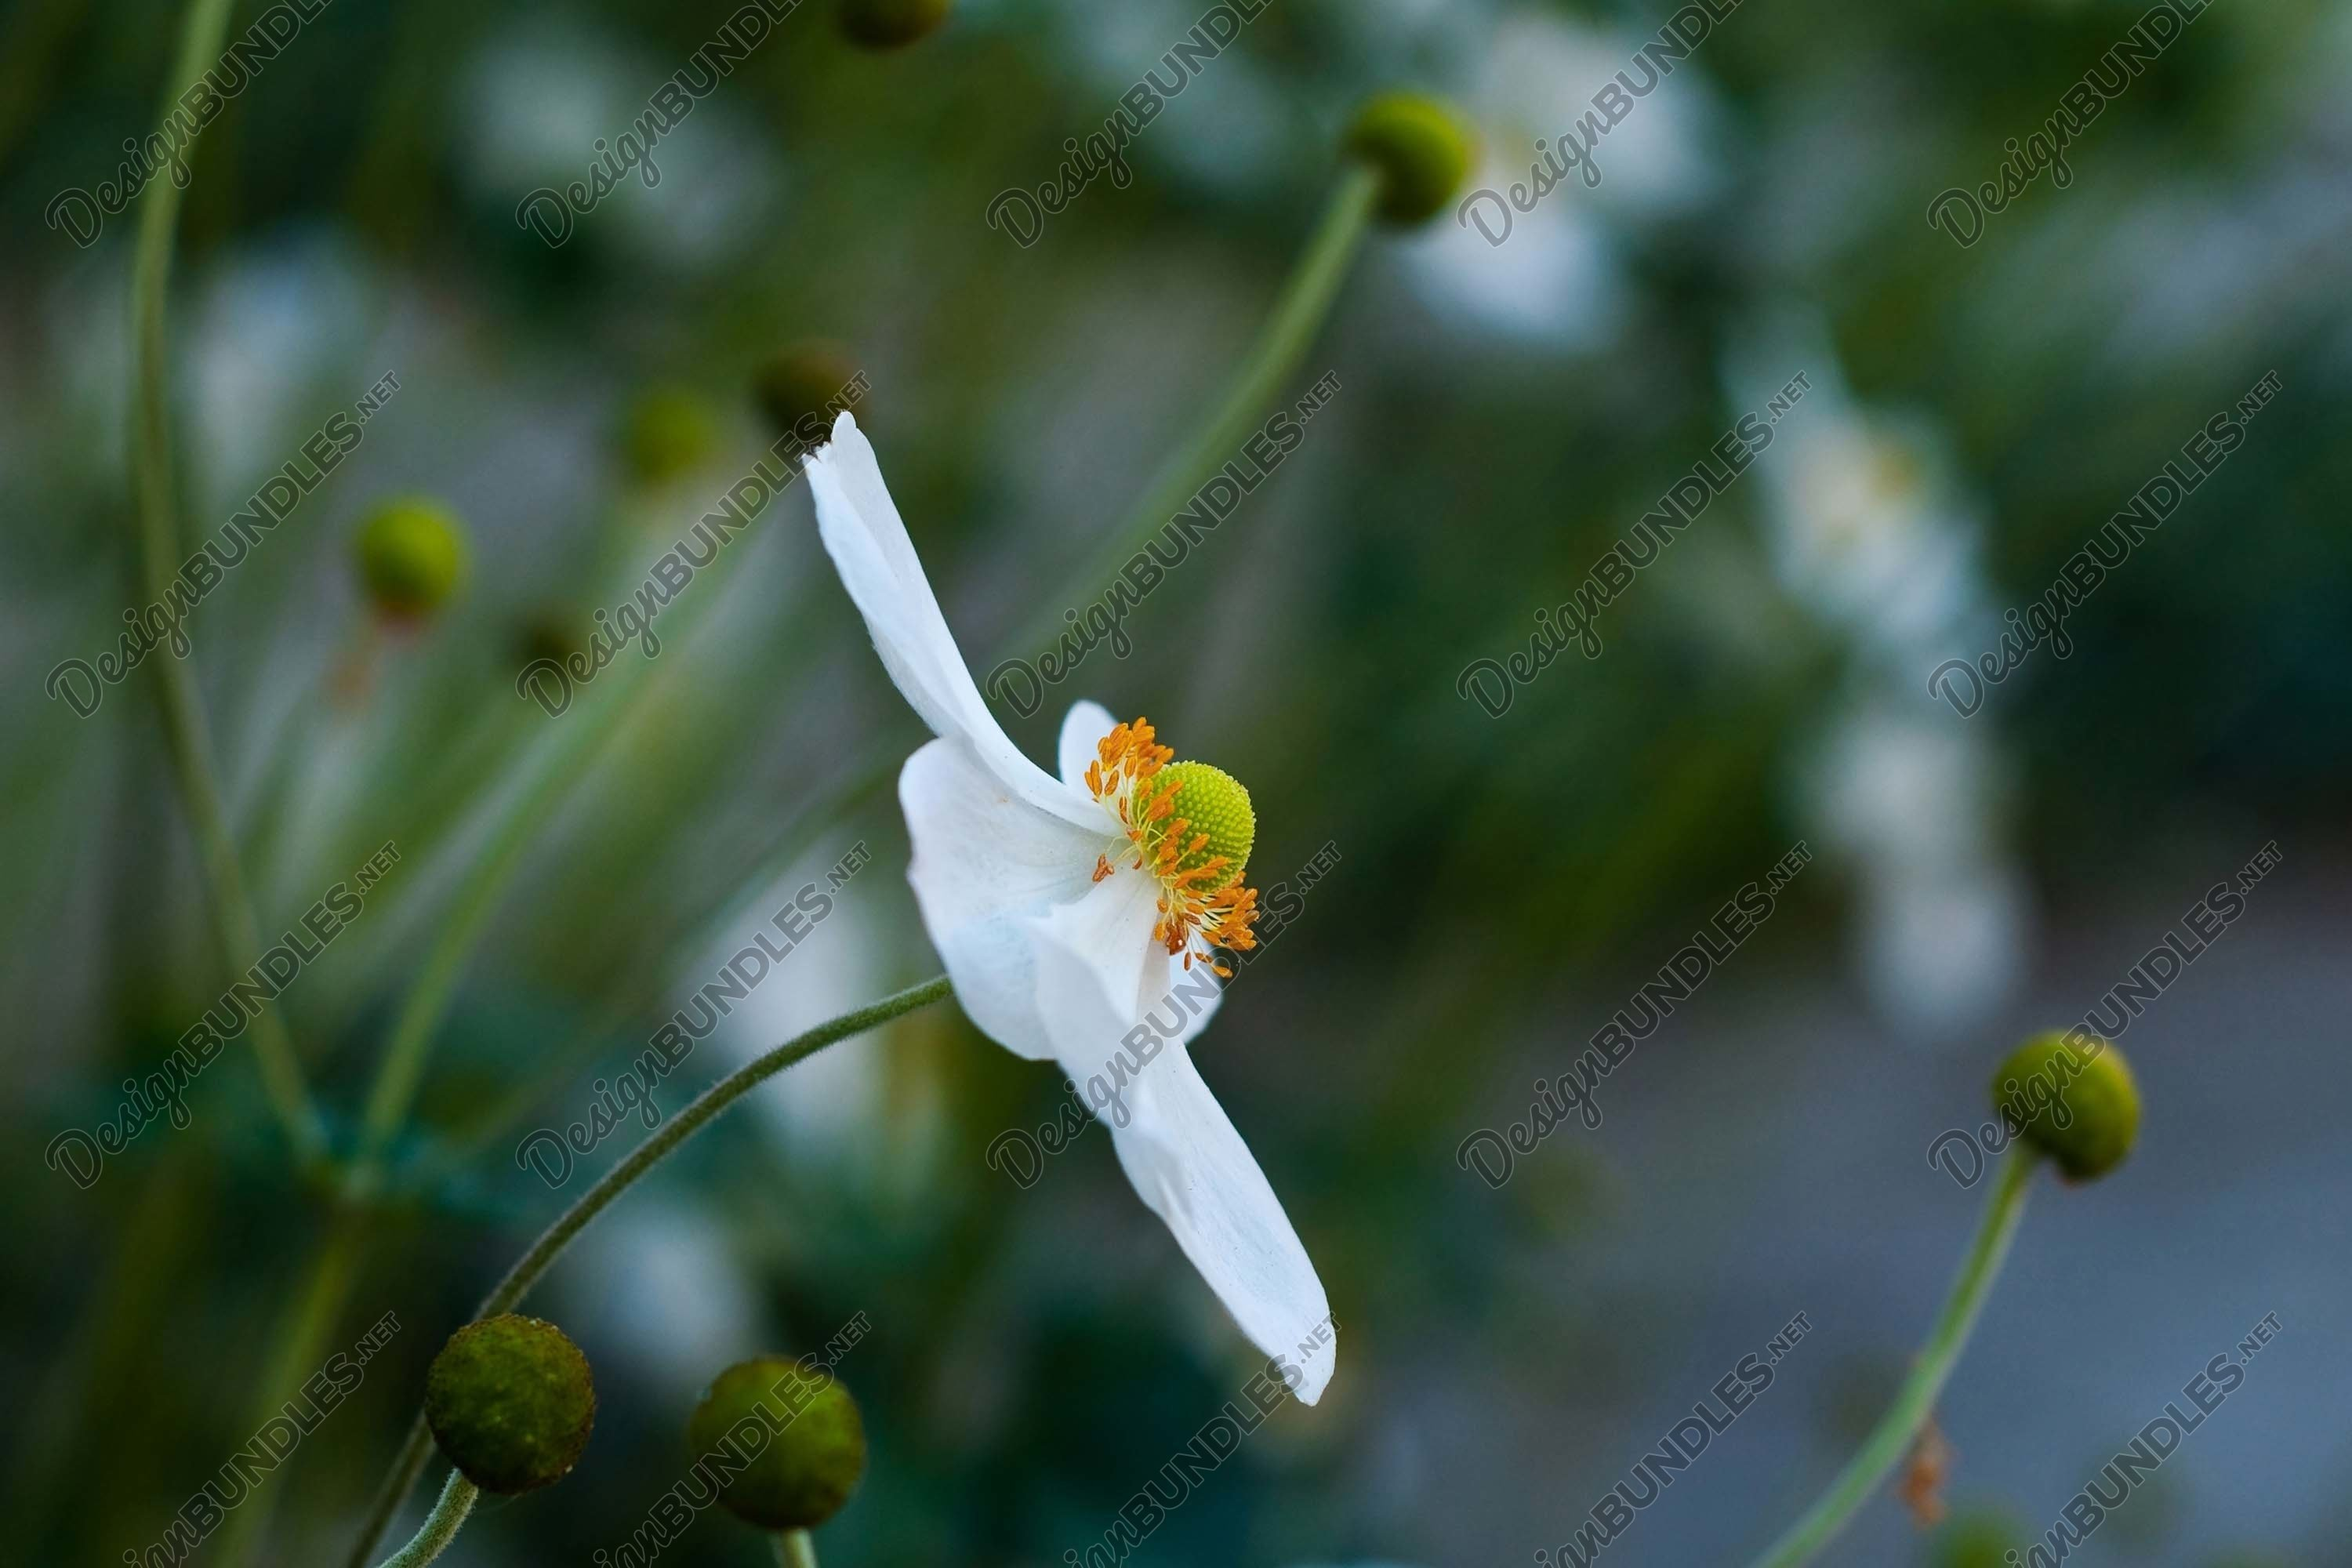 Stock Photo - Close-Up Of Flowers Blooming In Field example image 1